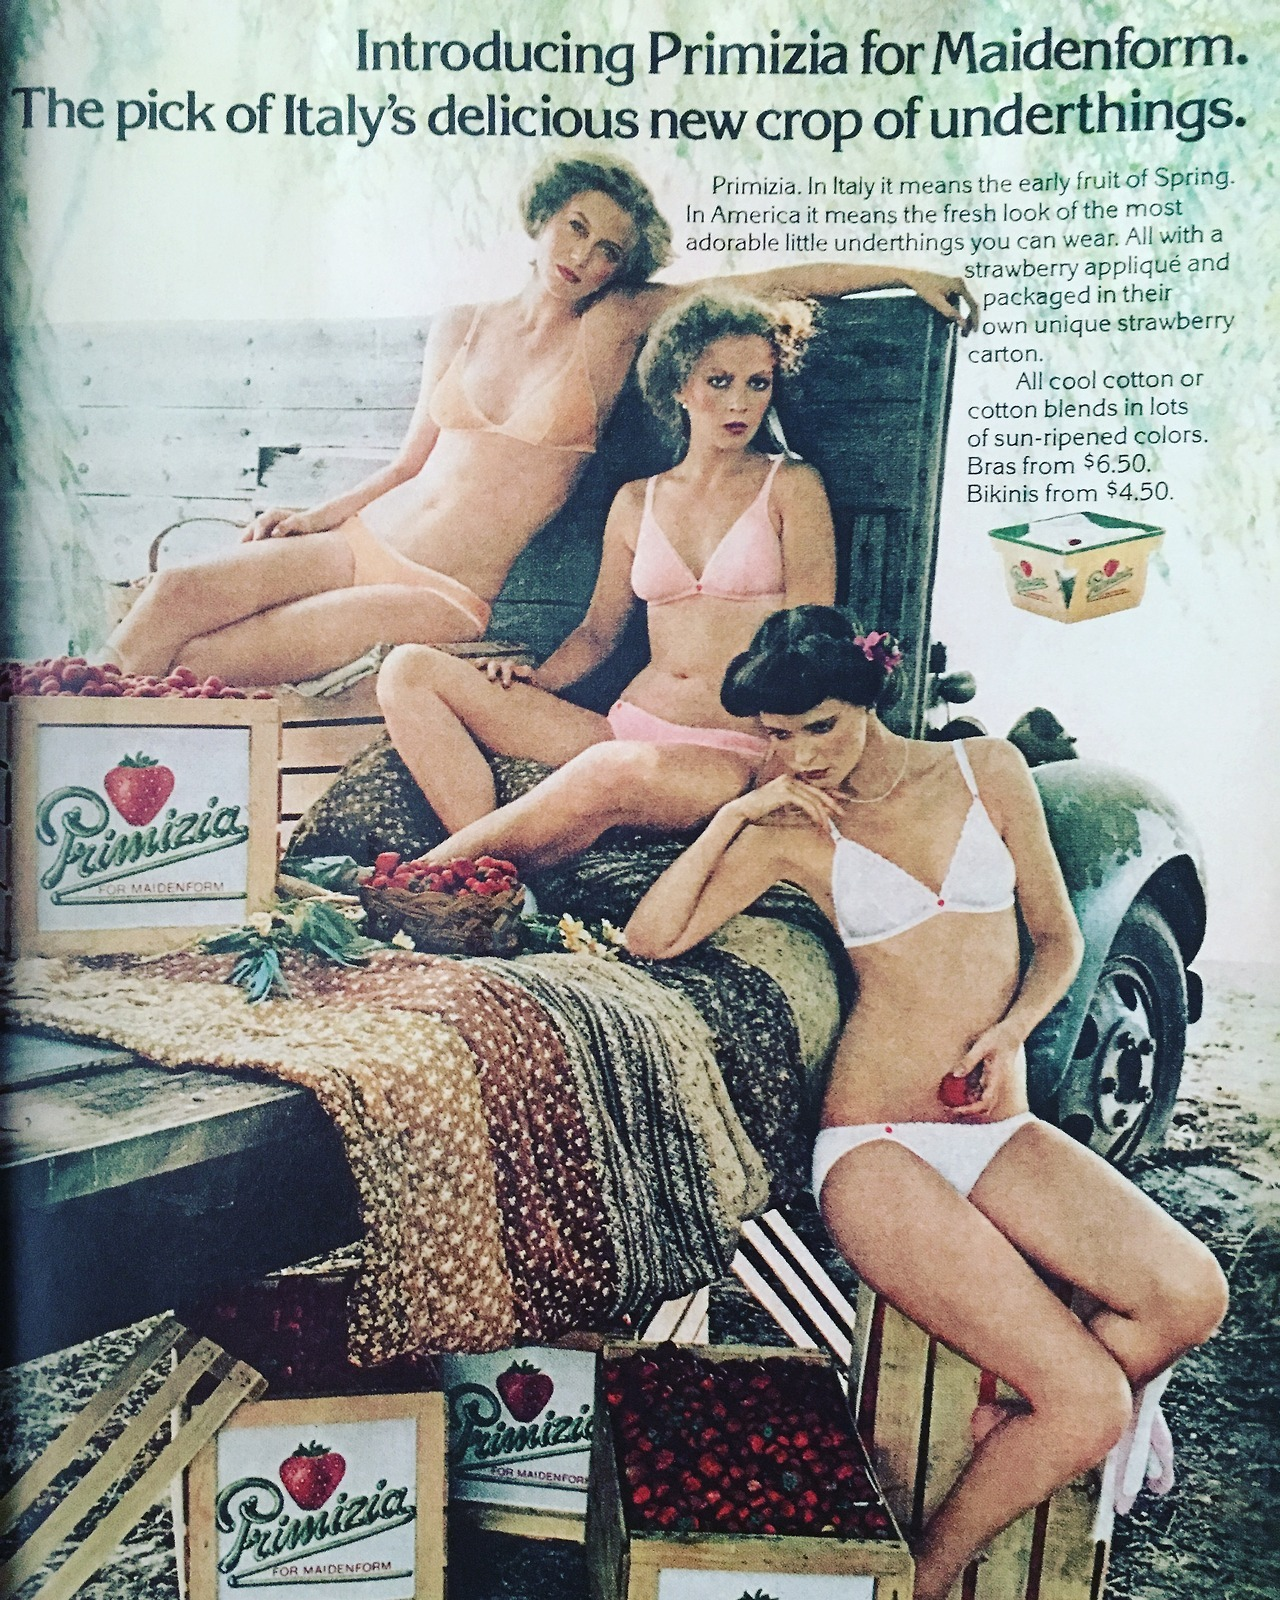 Introducing Primizia for Maidenform. The pick of Italy's delicious new crop of underthings.  Cosmopolitan. August 1979.